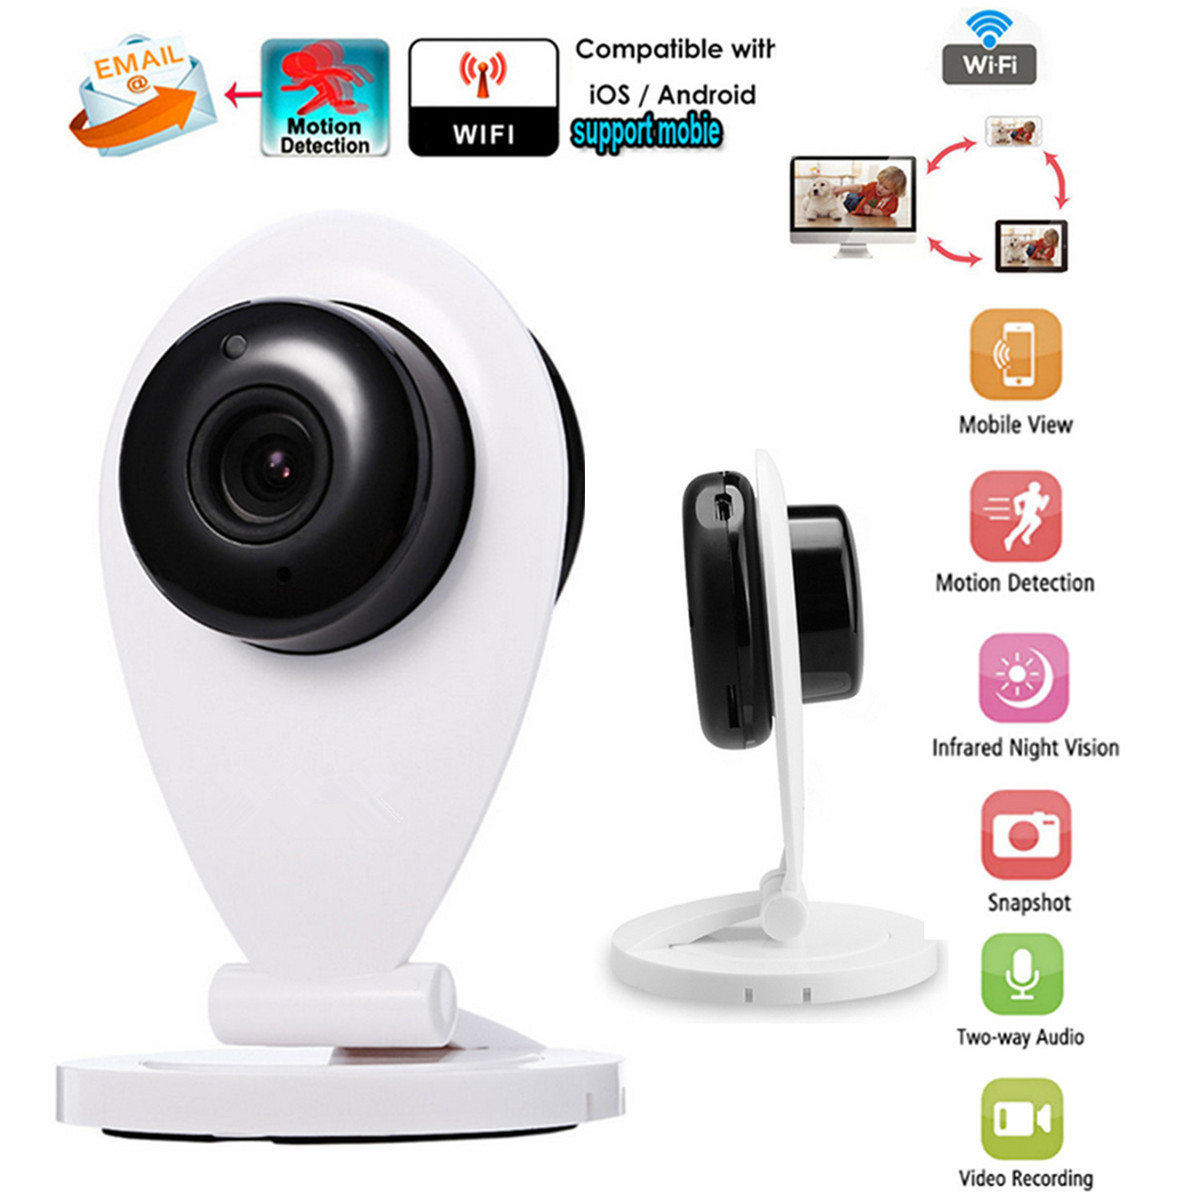 WiFi Camera DC5V/1A Powered 720P Full HD Outdoor Indoor Security IP Cam 90 Degree View Angle Night VisionWiFi Camera DC5V/1A Powered 720P Full HD Outdoor Indoor Security IP Cam 90 Degree View Angle Night Vision